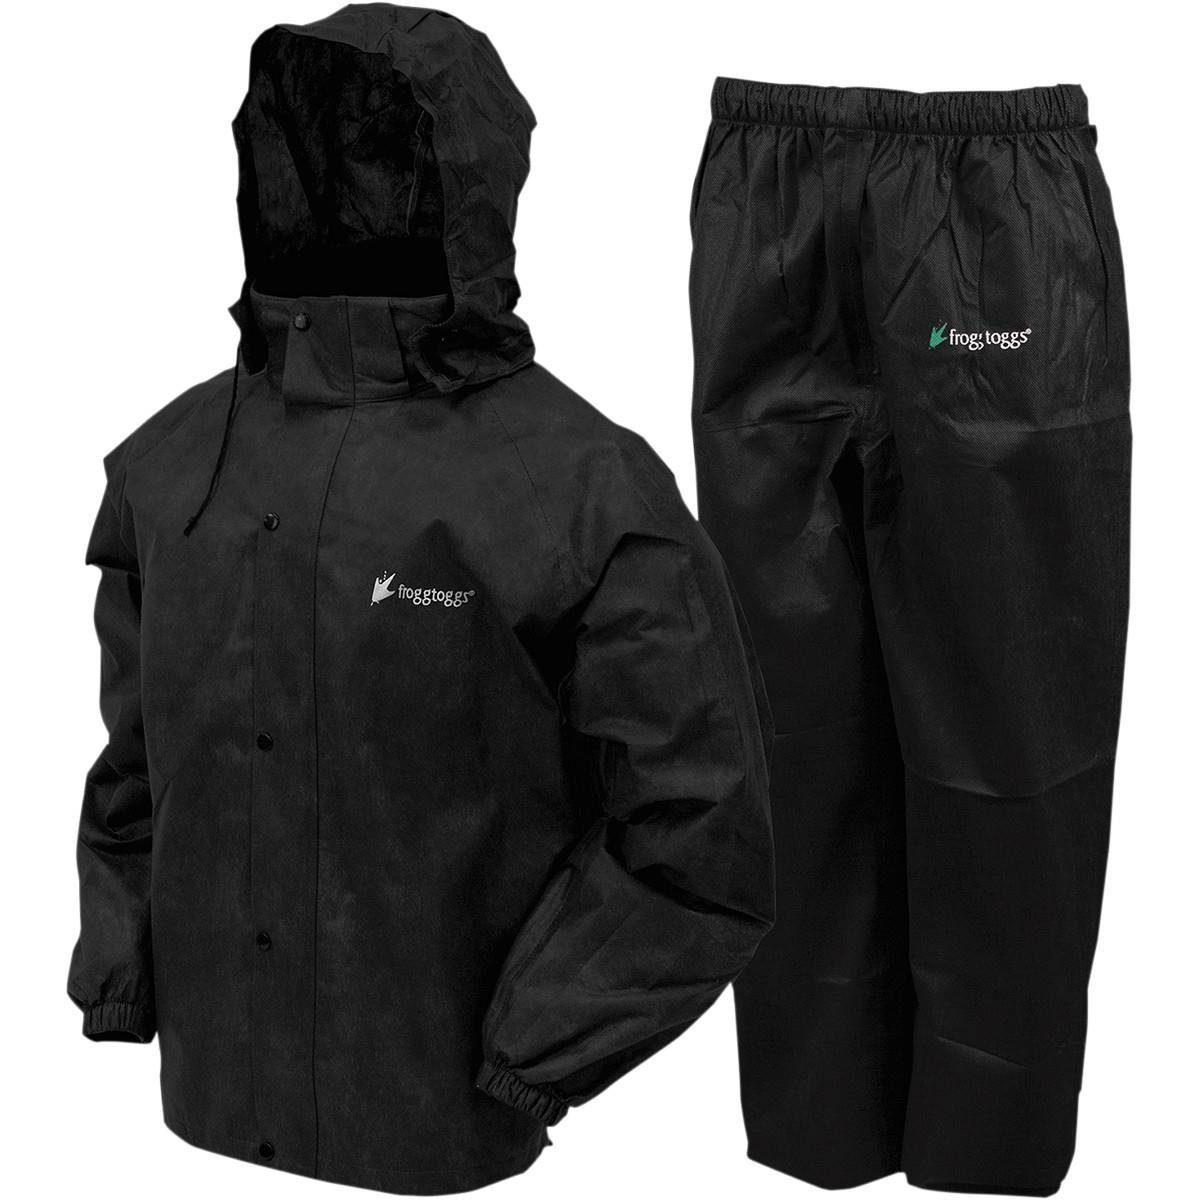 All Sports Rain Suit (Black, Large) AS131001LG, A blend of classic Frogg Toggsnon-woven materials that provide a great... by